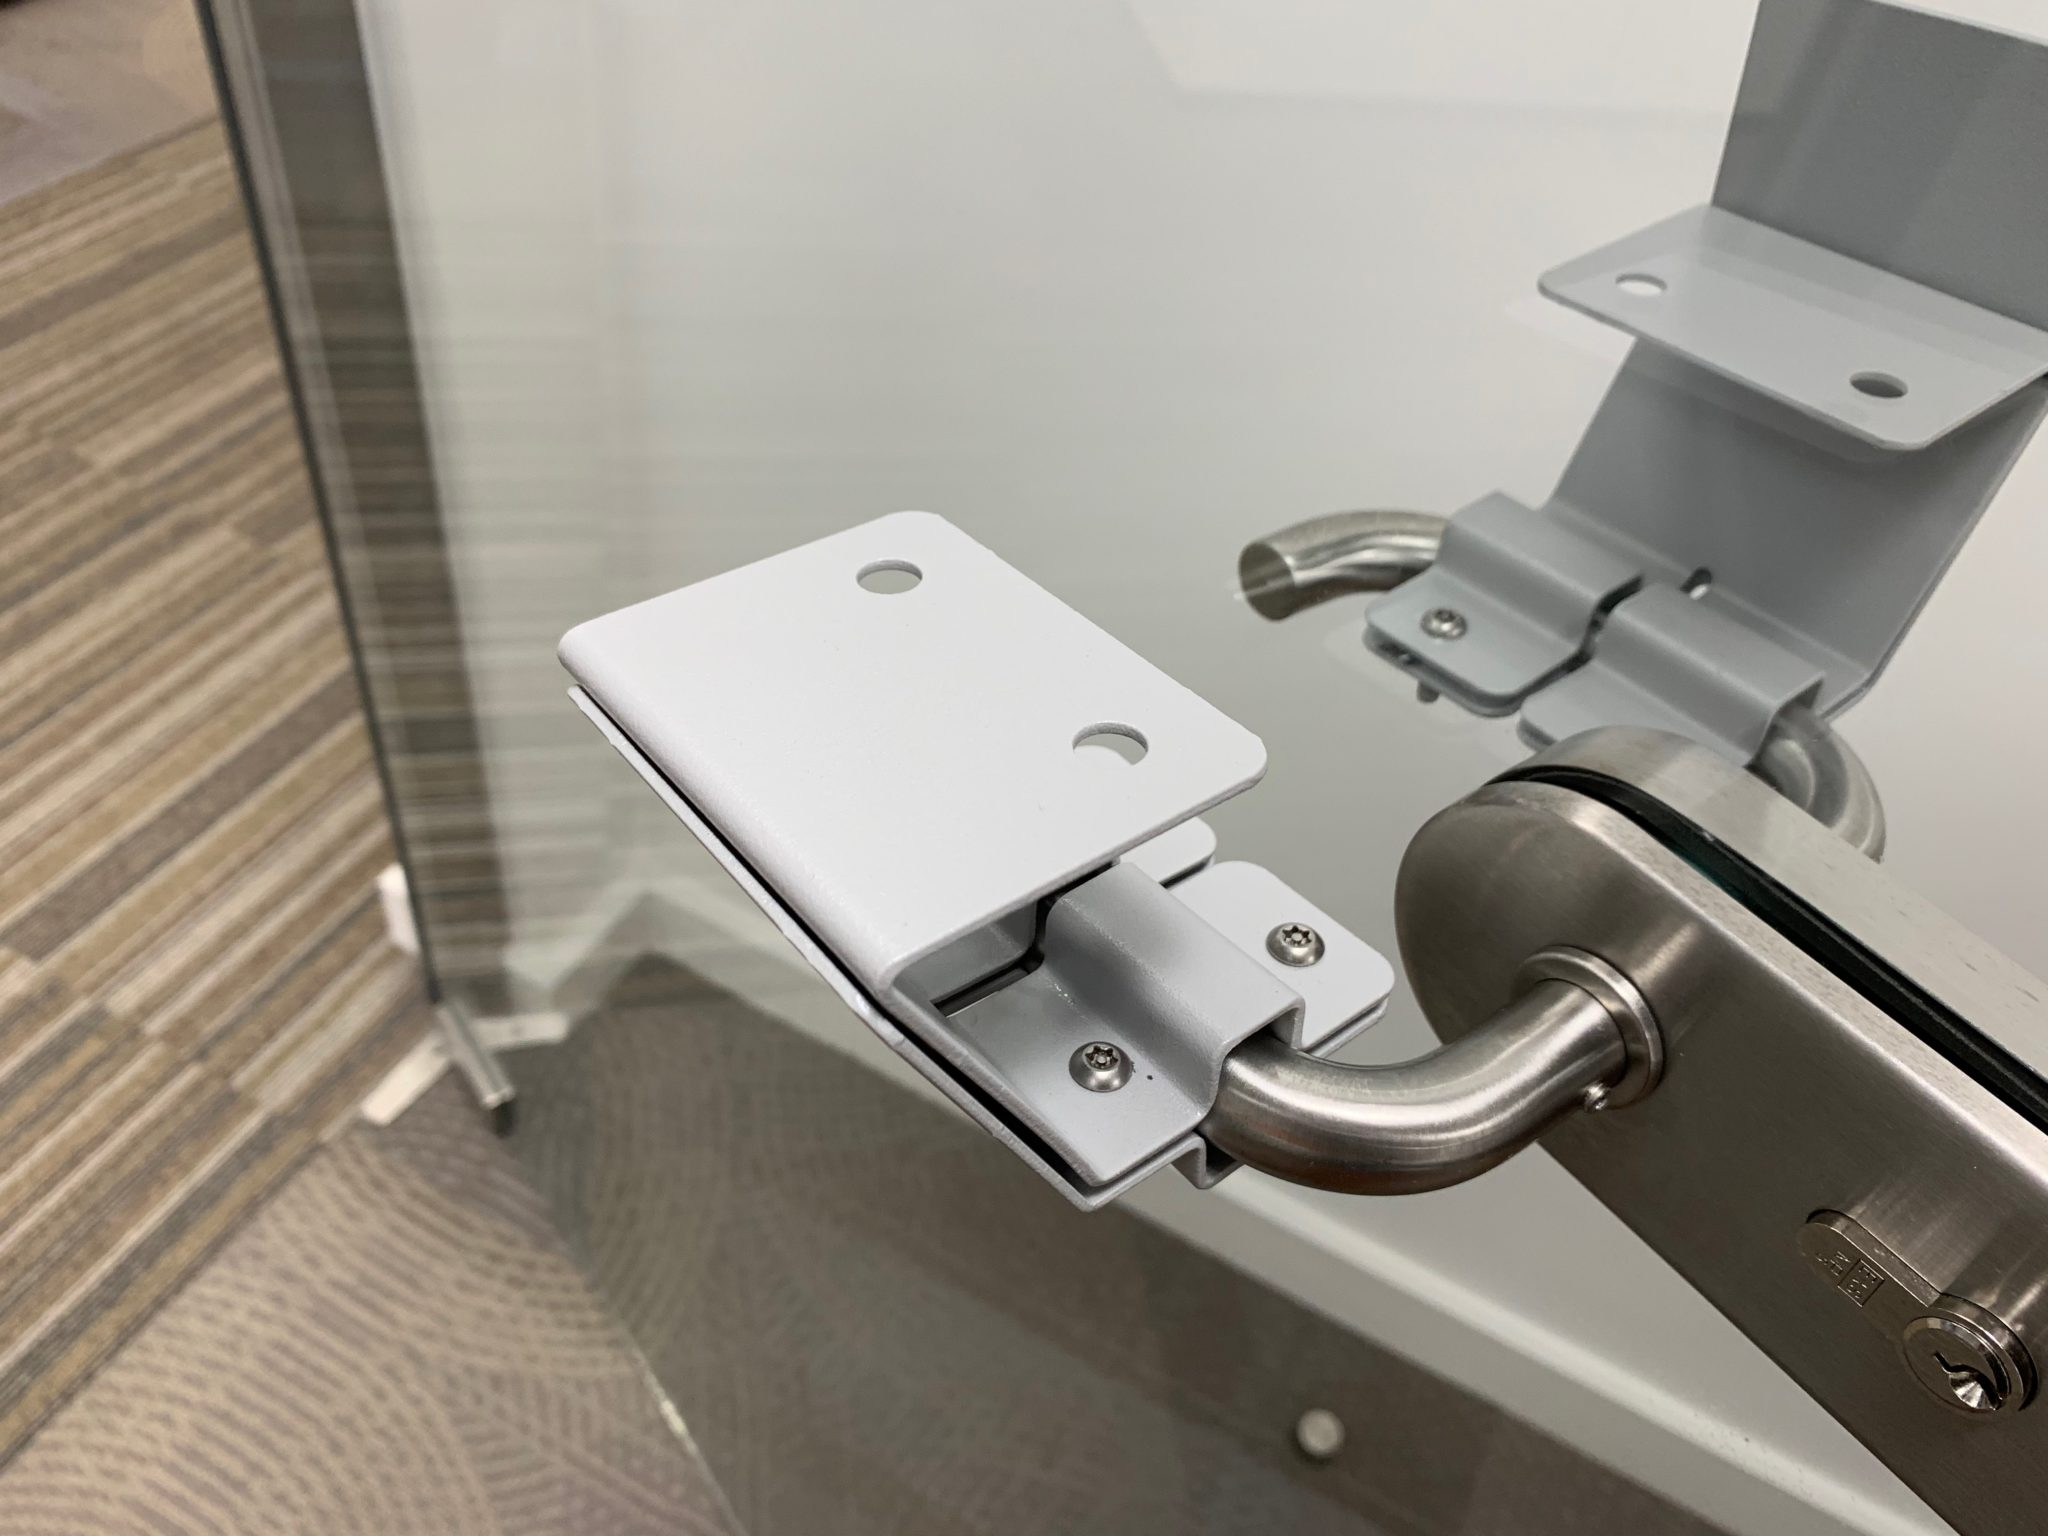 Hands-free door handles, designed and manufactured by us.